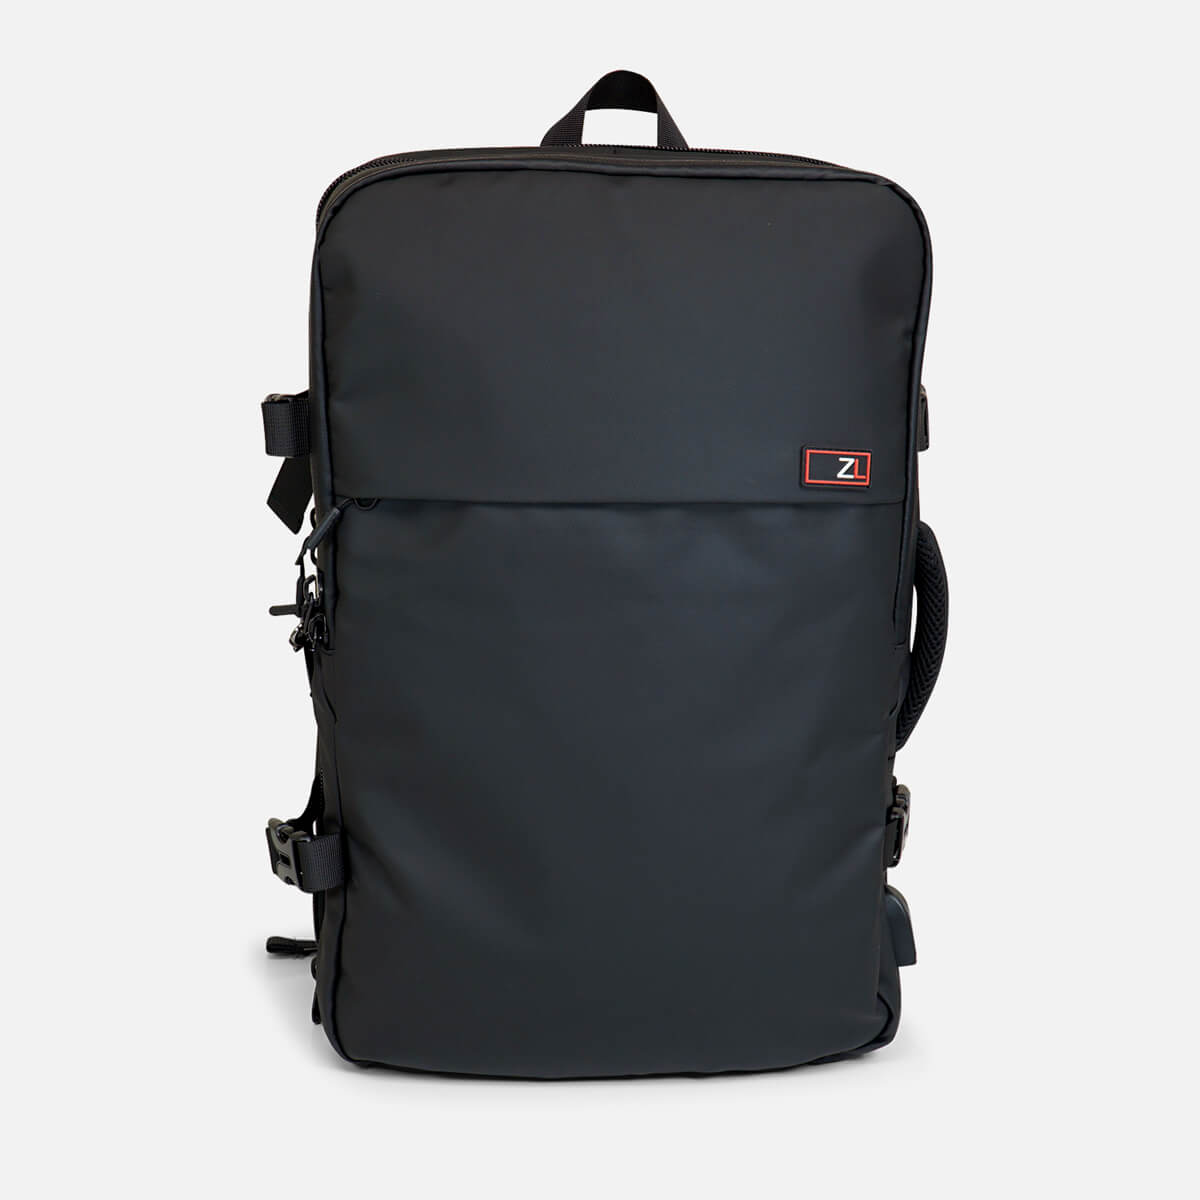 Road Warrior Travel Carryon Backpack